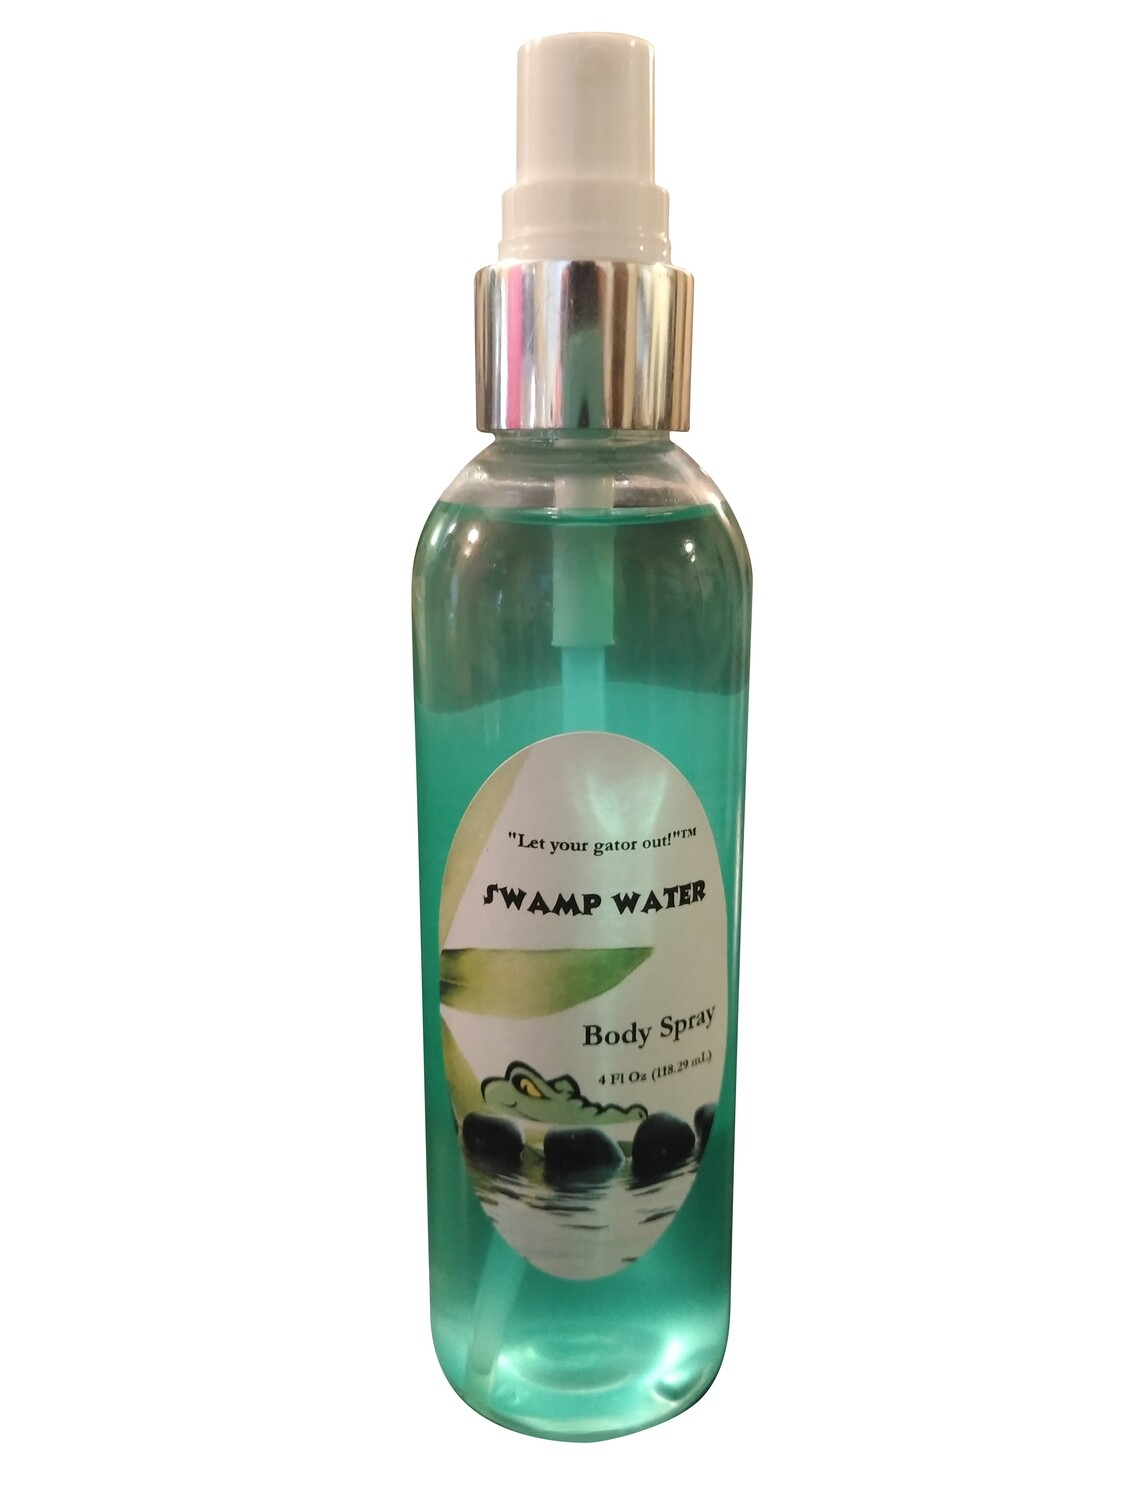 Swamp Water Body Spray